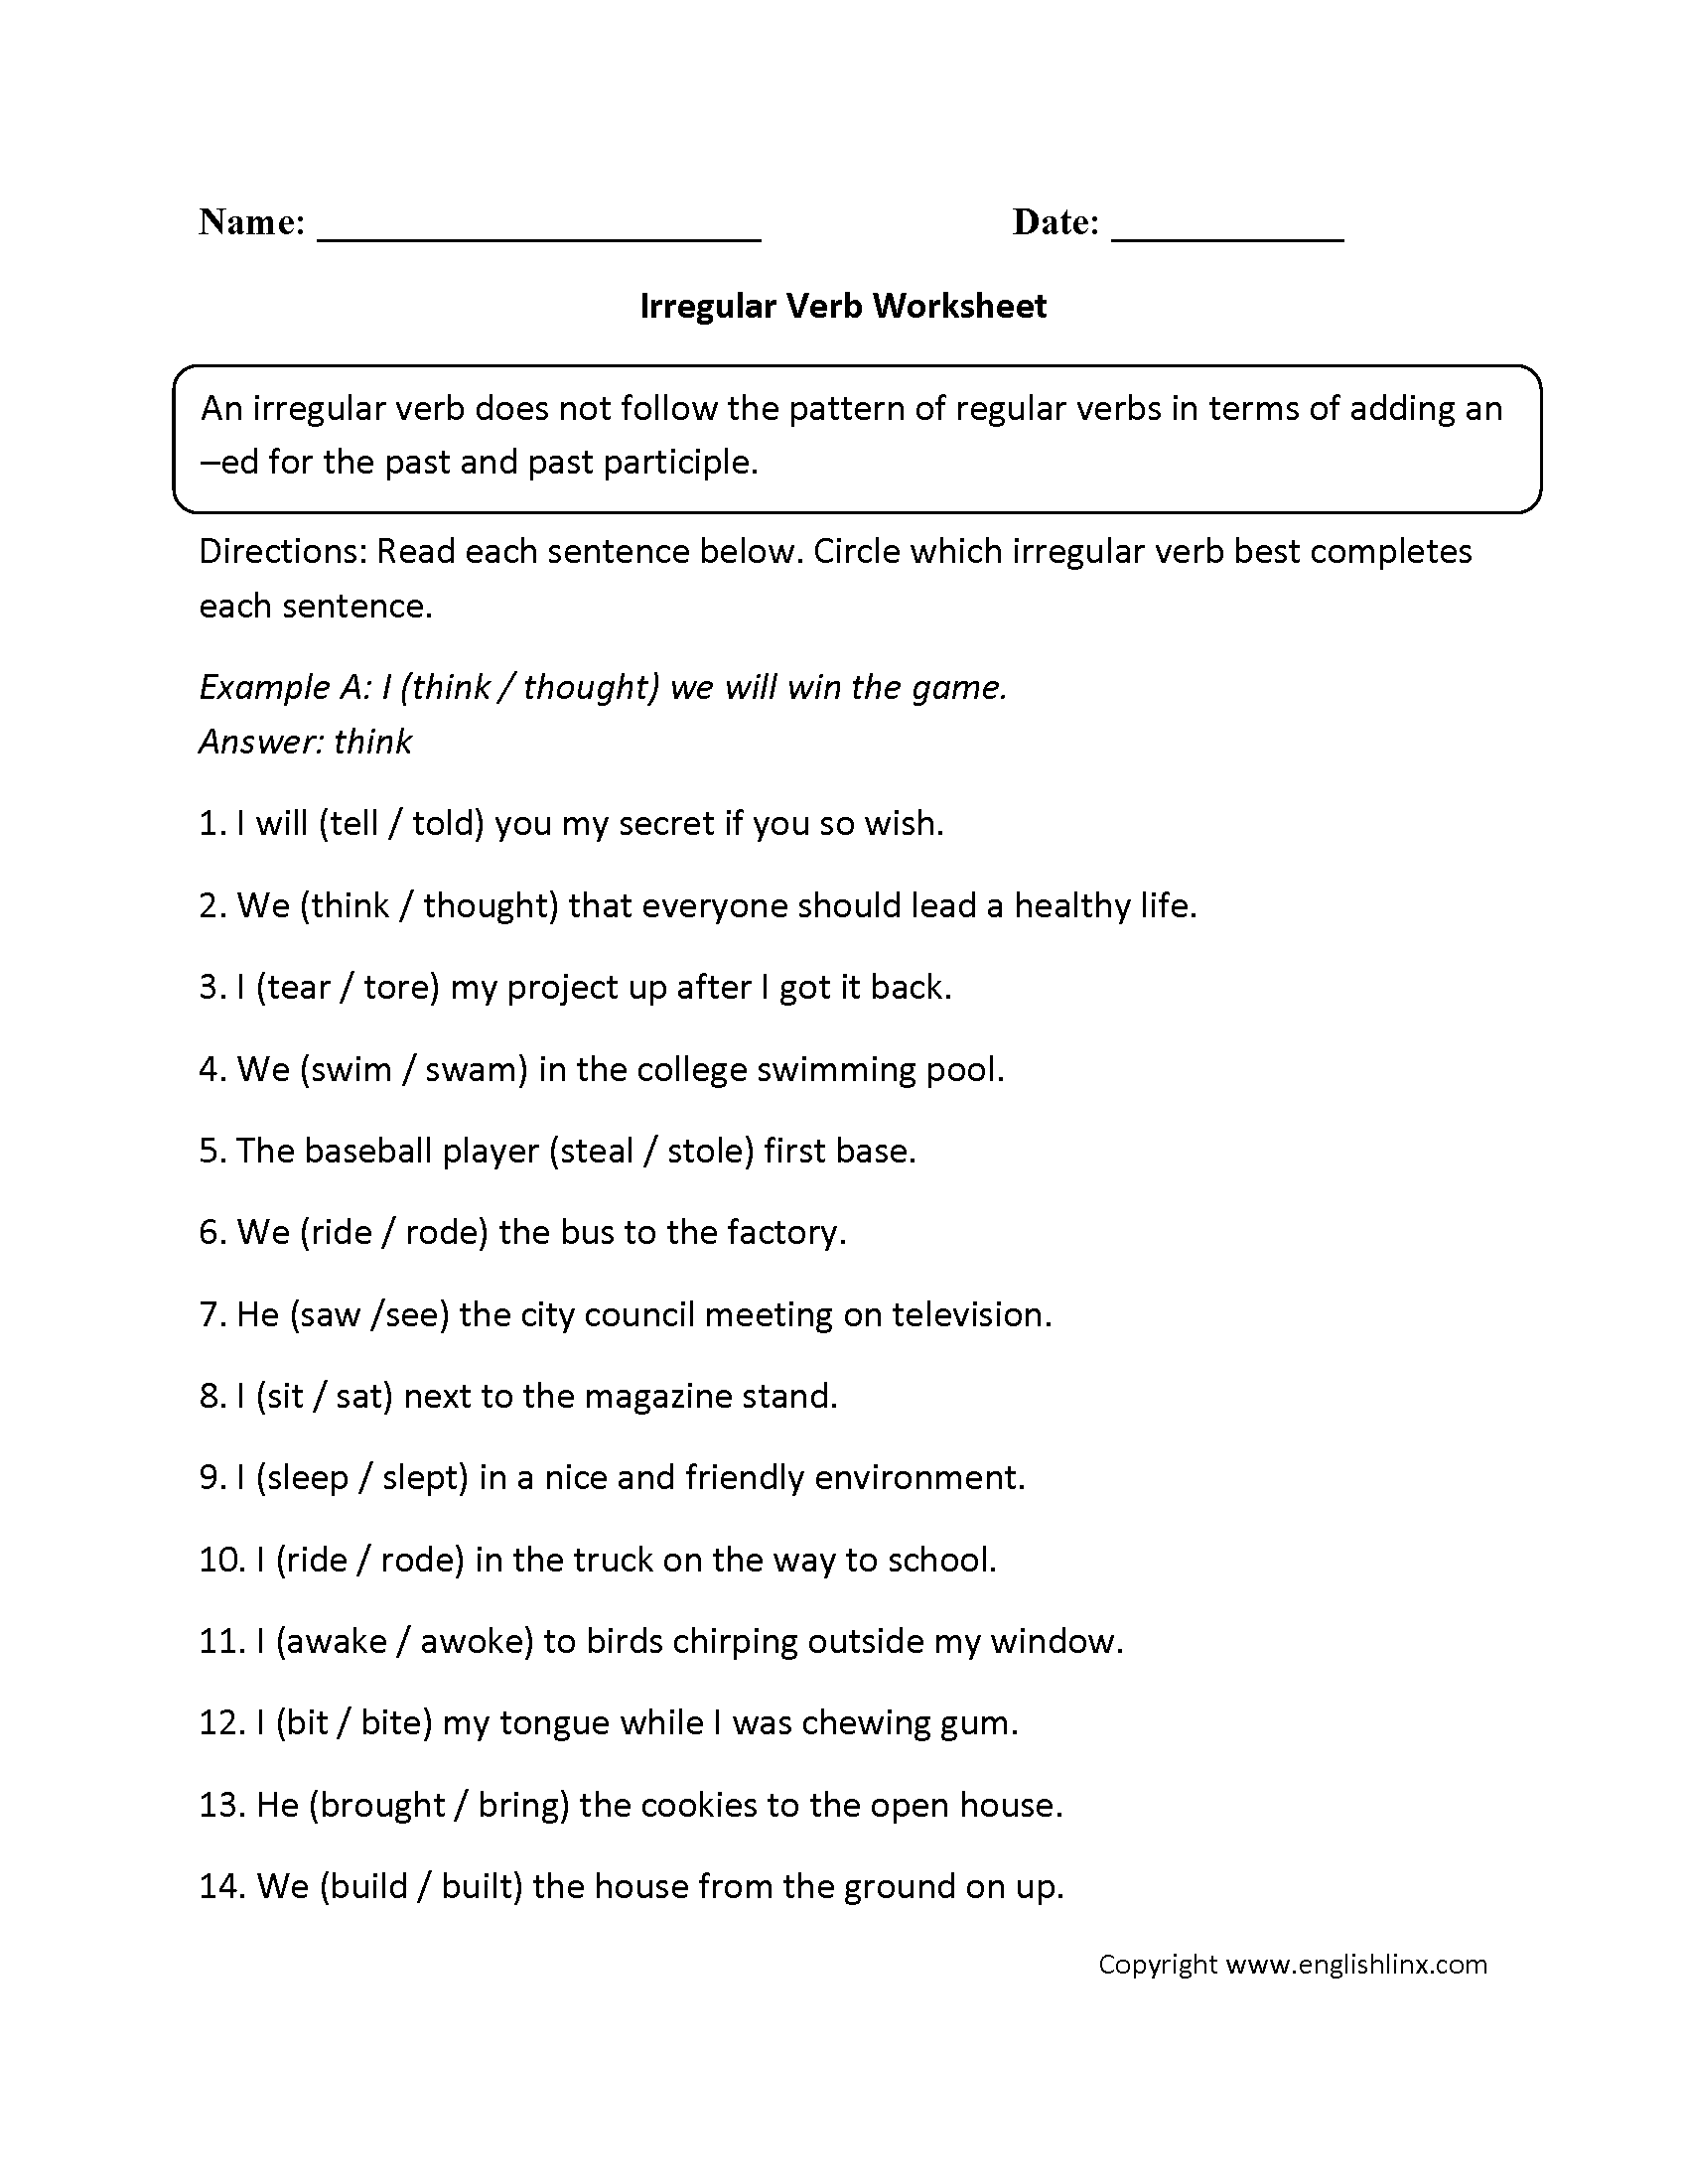 Irregular Verb Worksheet